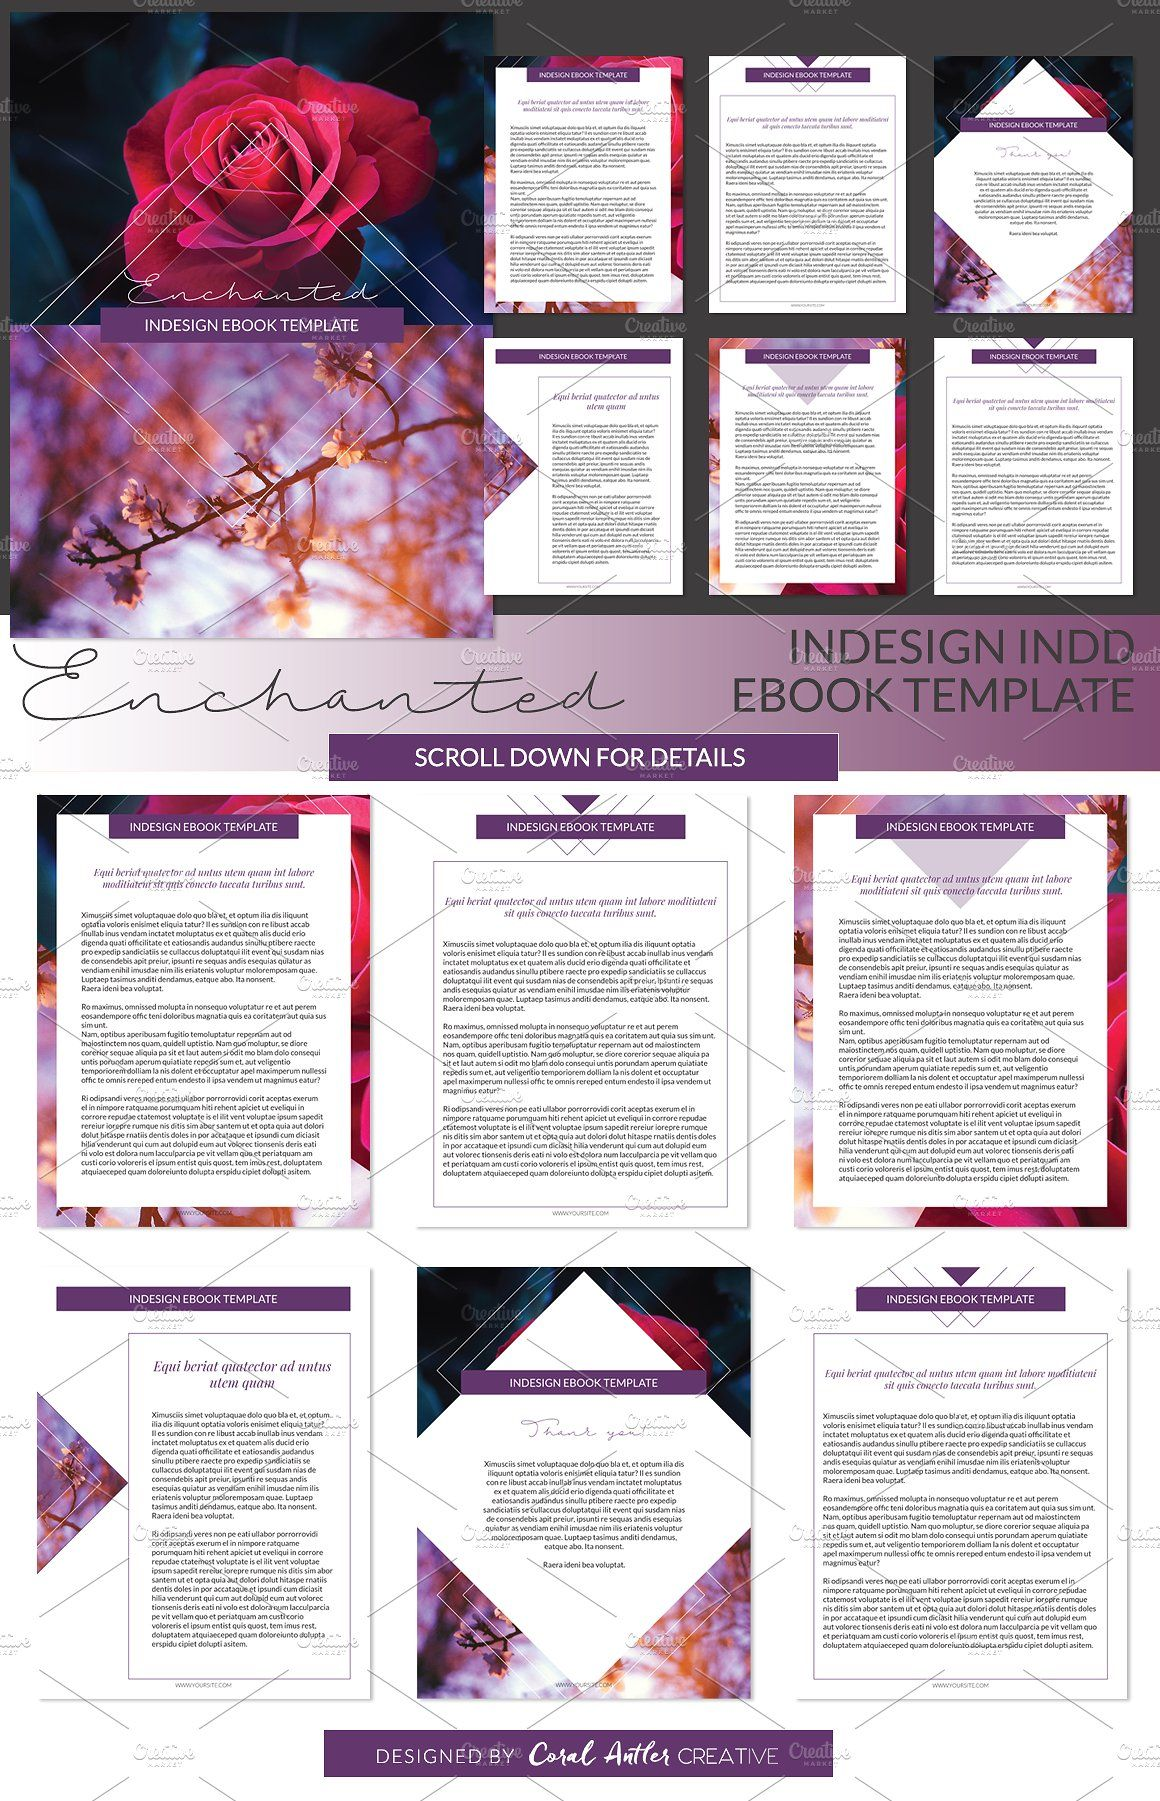 Enchanted Indesign Ebook Template - Presentations - 1 | WEBSITE ...